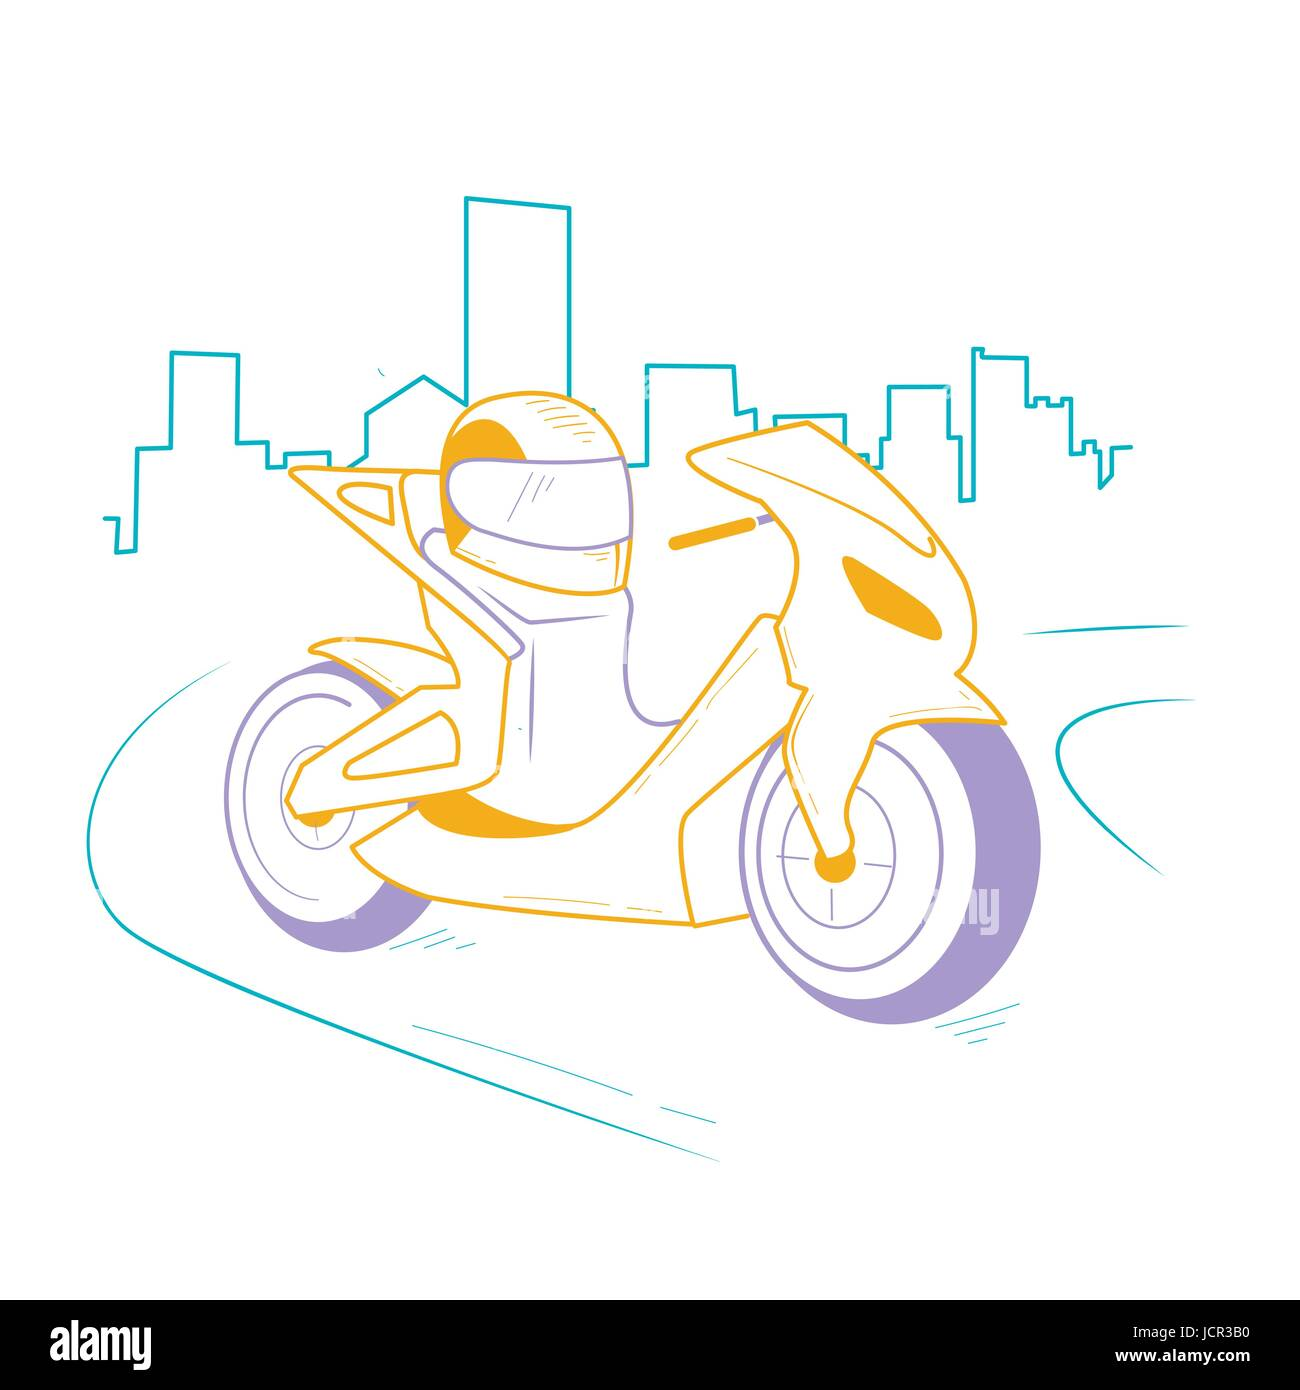 icon motorcycle, motorbike  on the road in the city. Icon in the linear style - Stock Vector